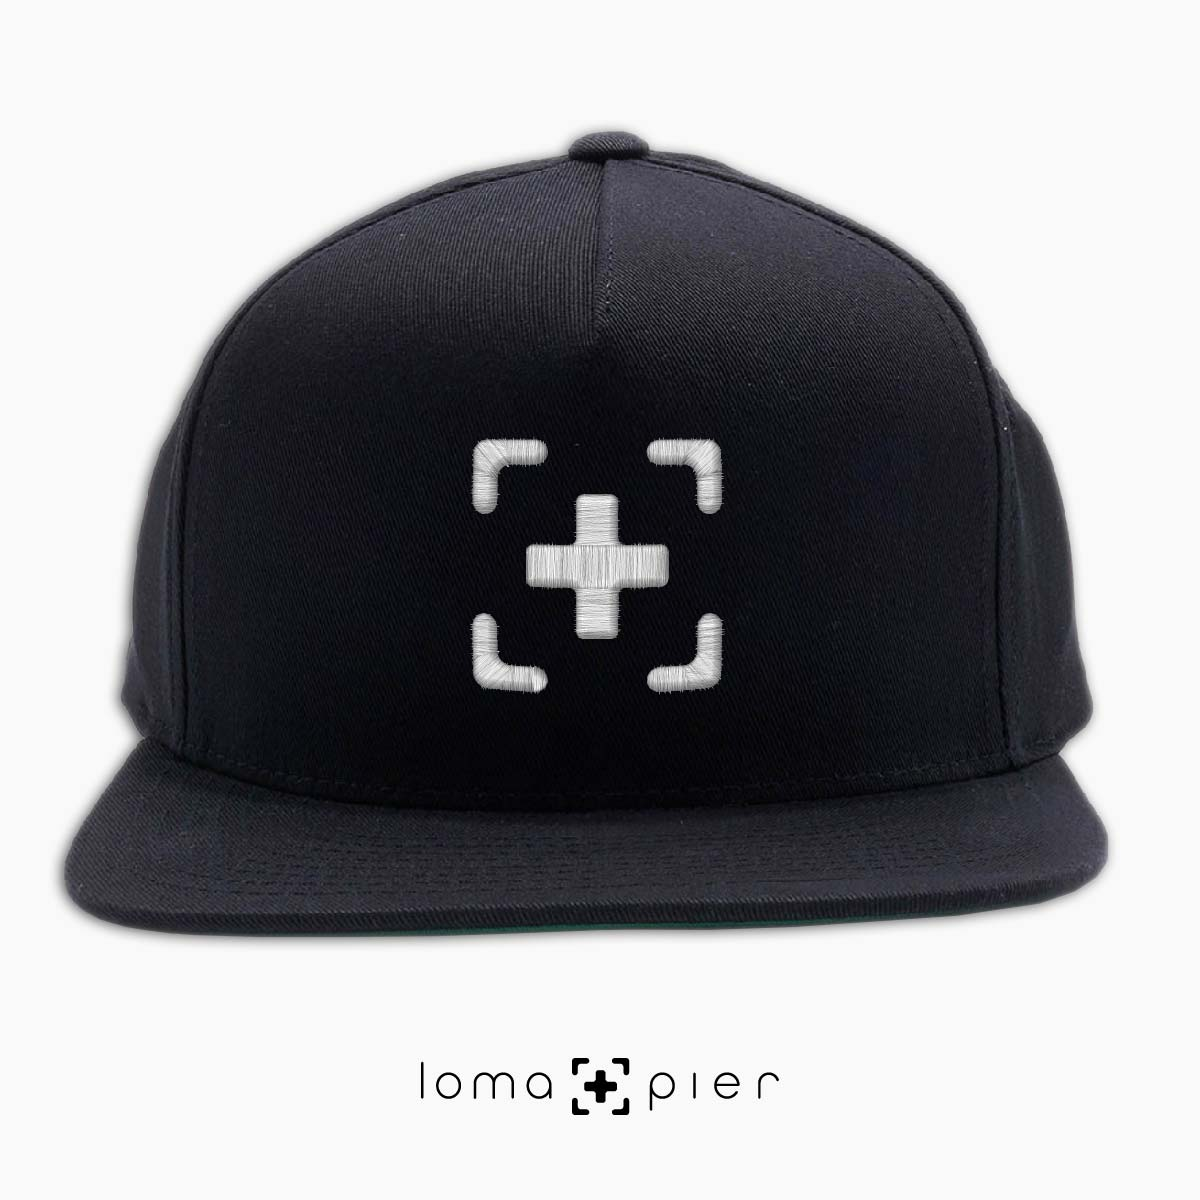 classic snapback cap in black by loma+pier hat shop